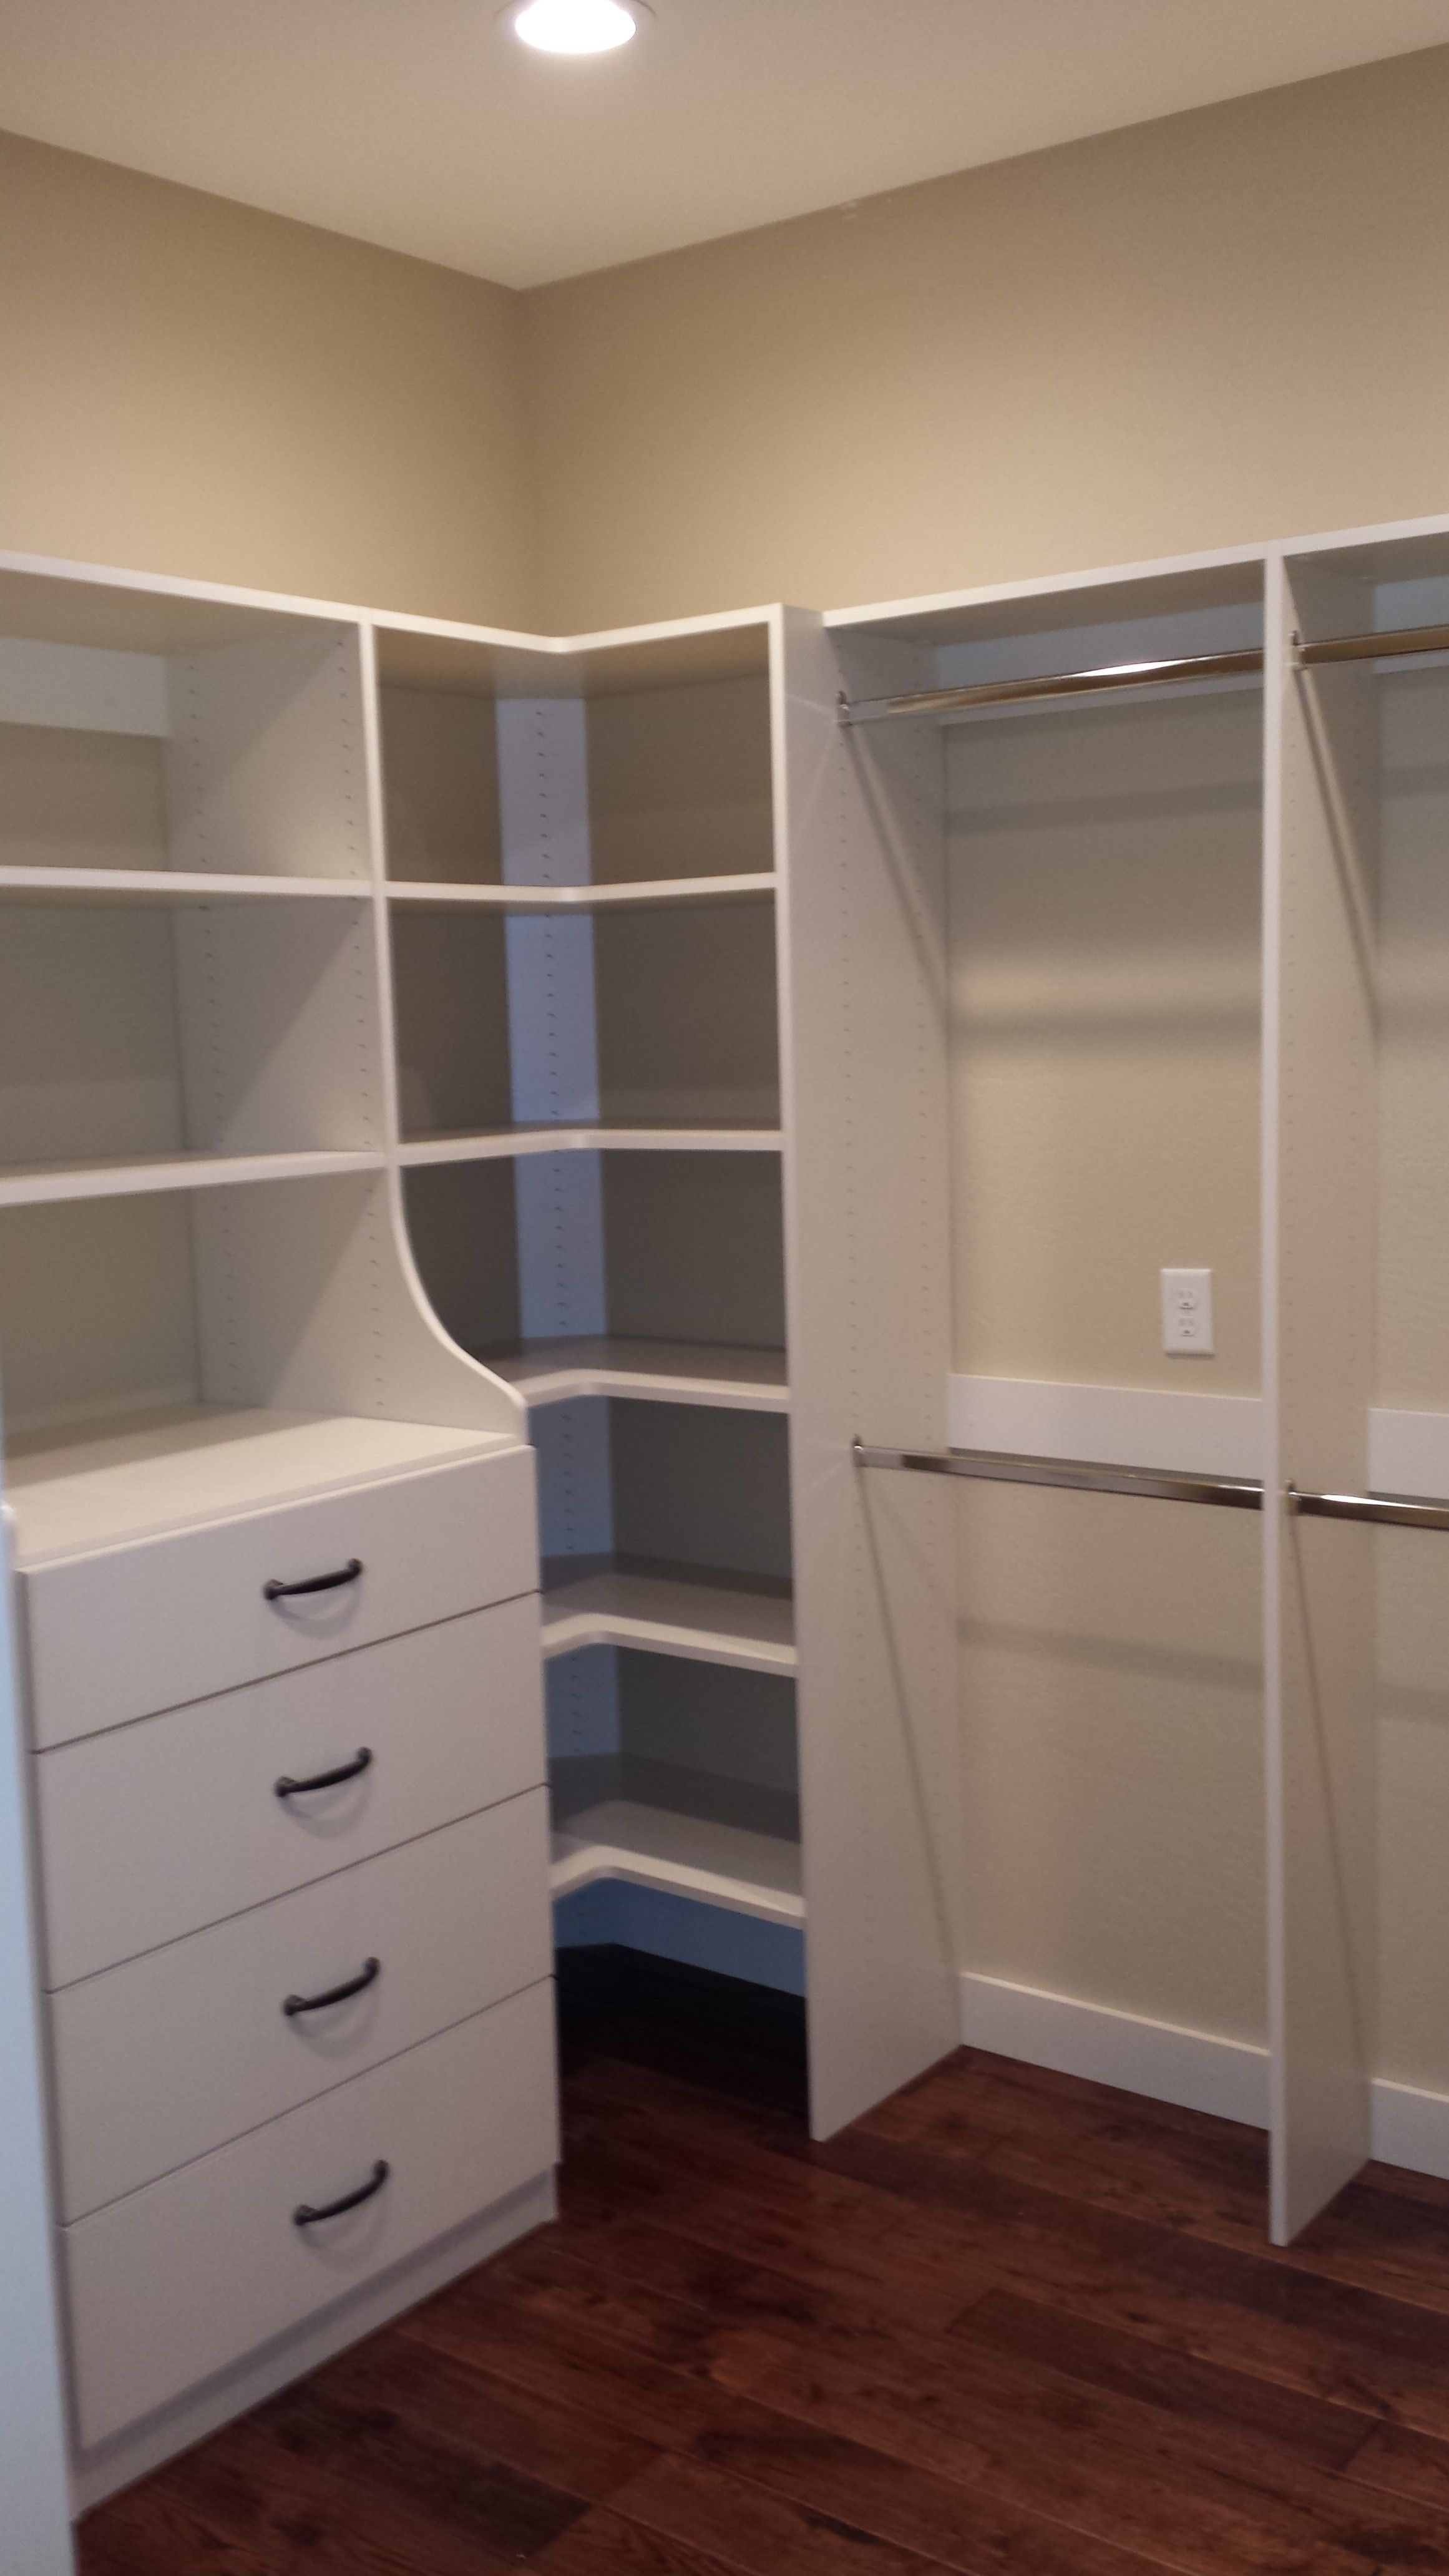 Master Closet Small Walk In With Hanging Storage Drawers And Shelving More Modern